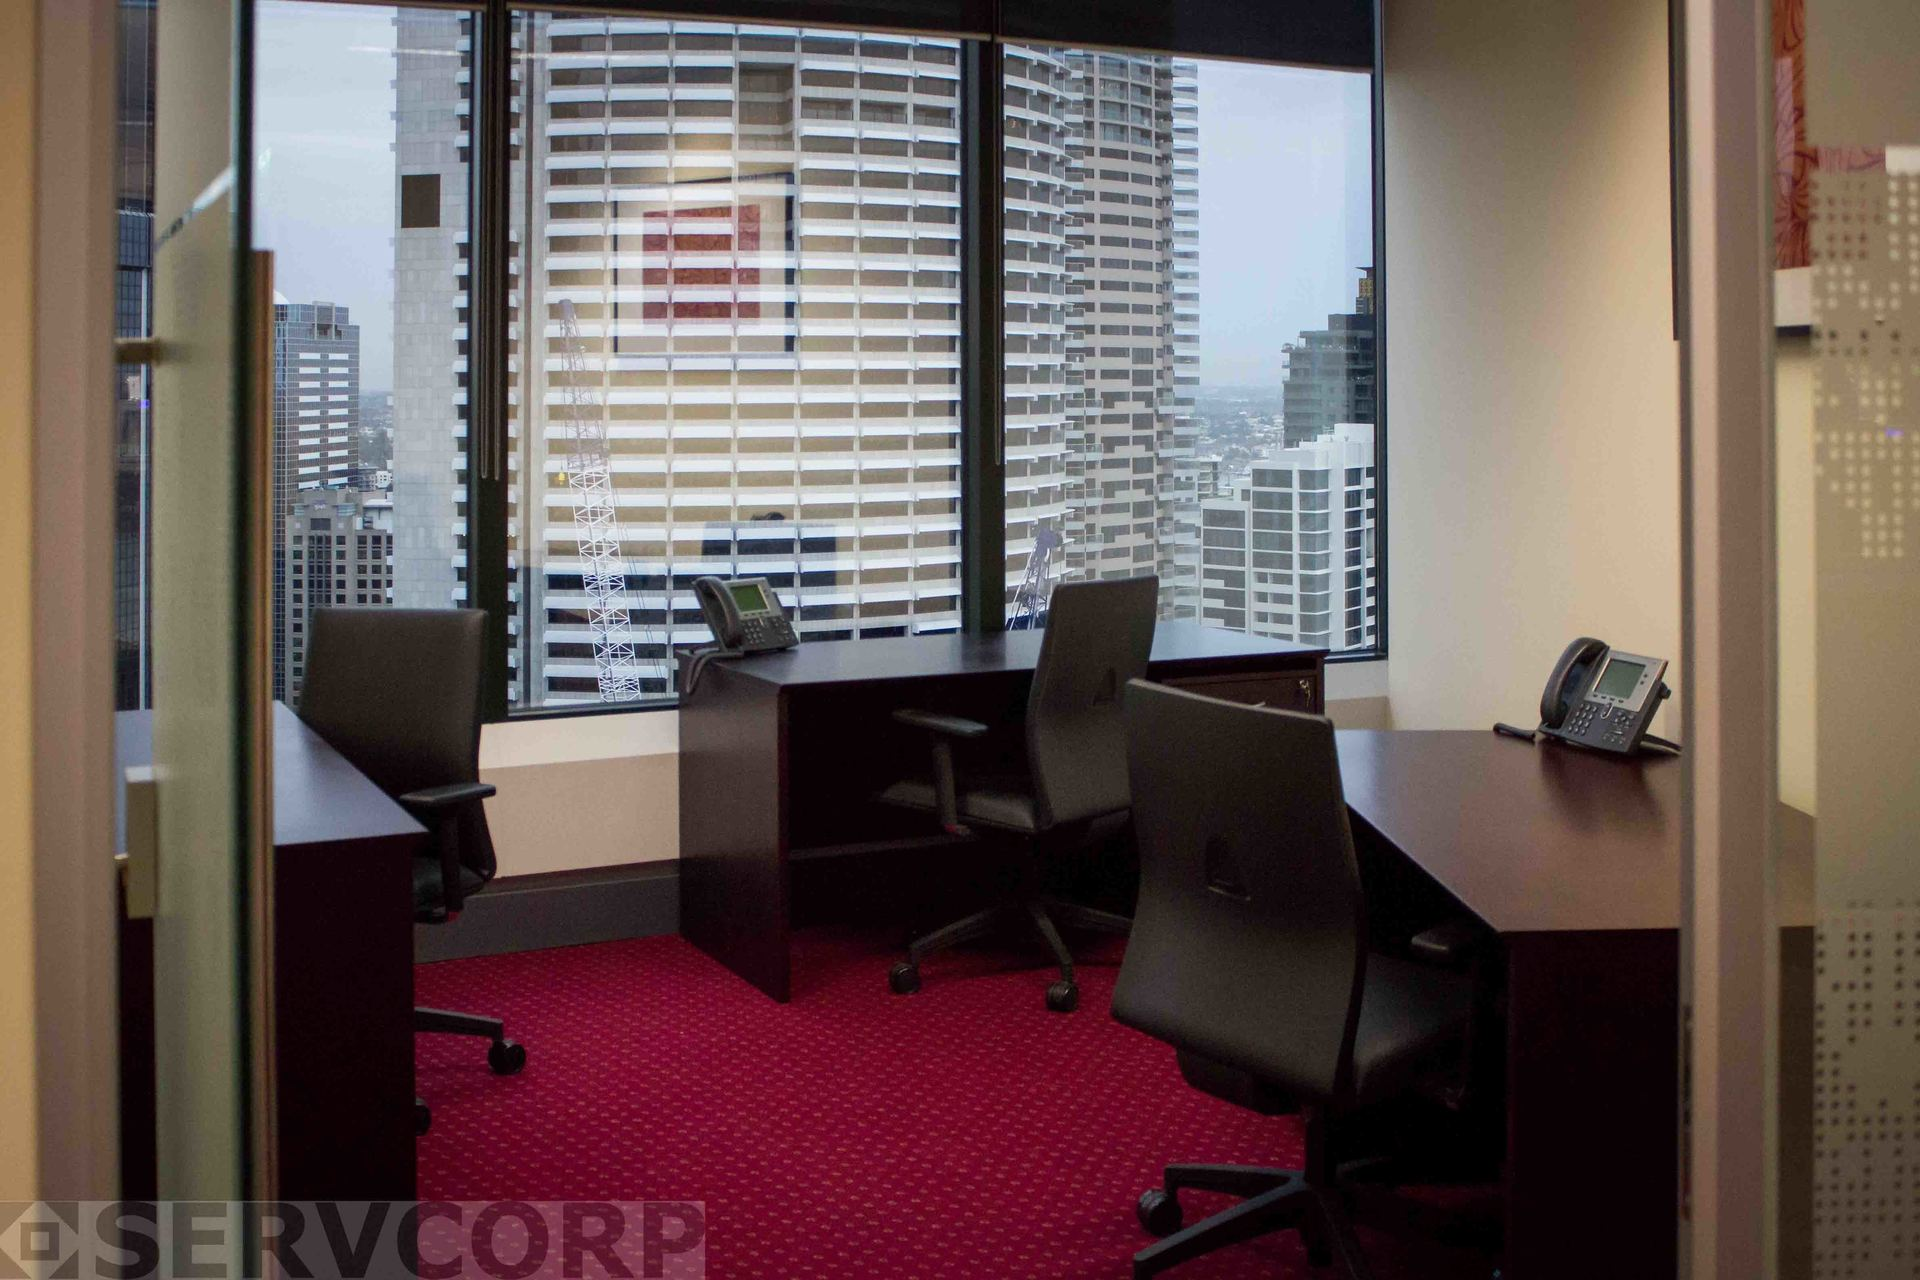 HIGH-QUALITY SUTIABLE OFFICE IN THE HEART OF SYDNEY CITY WITH EXCELLENT NATURAL LIGHT.